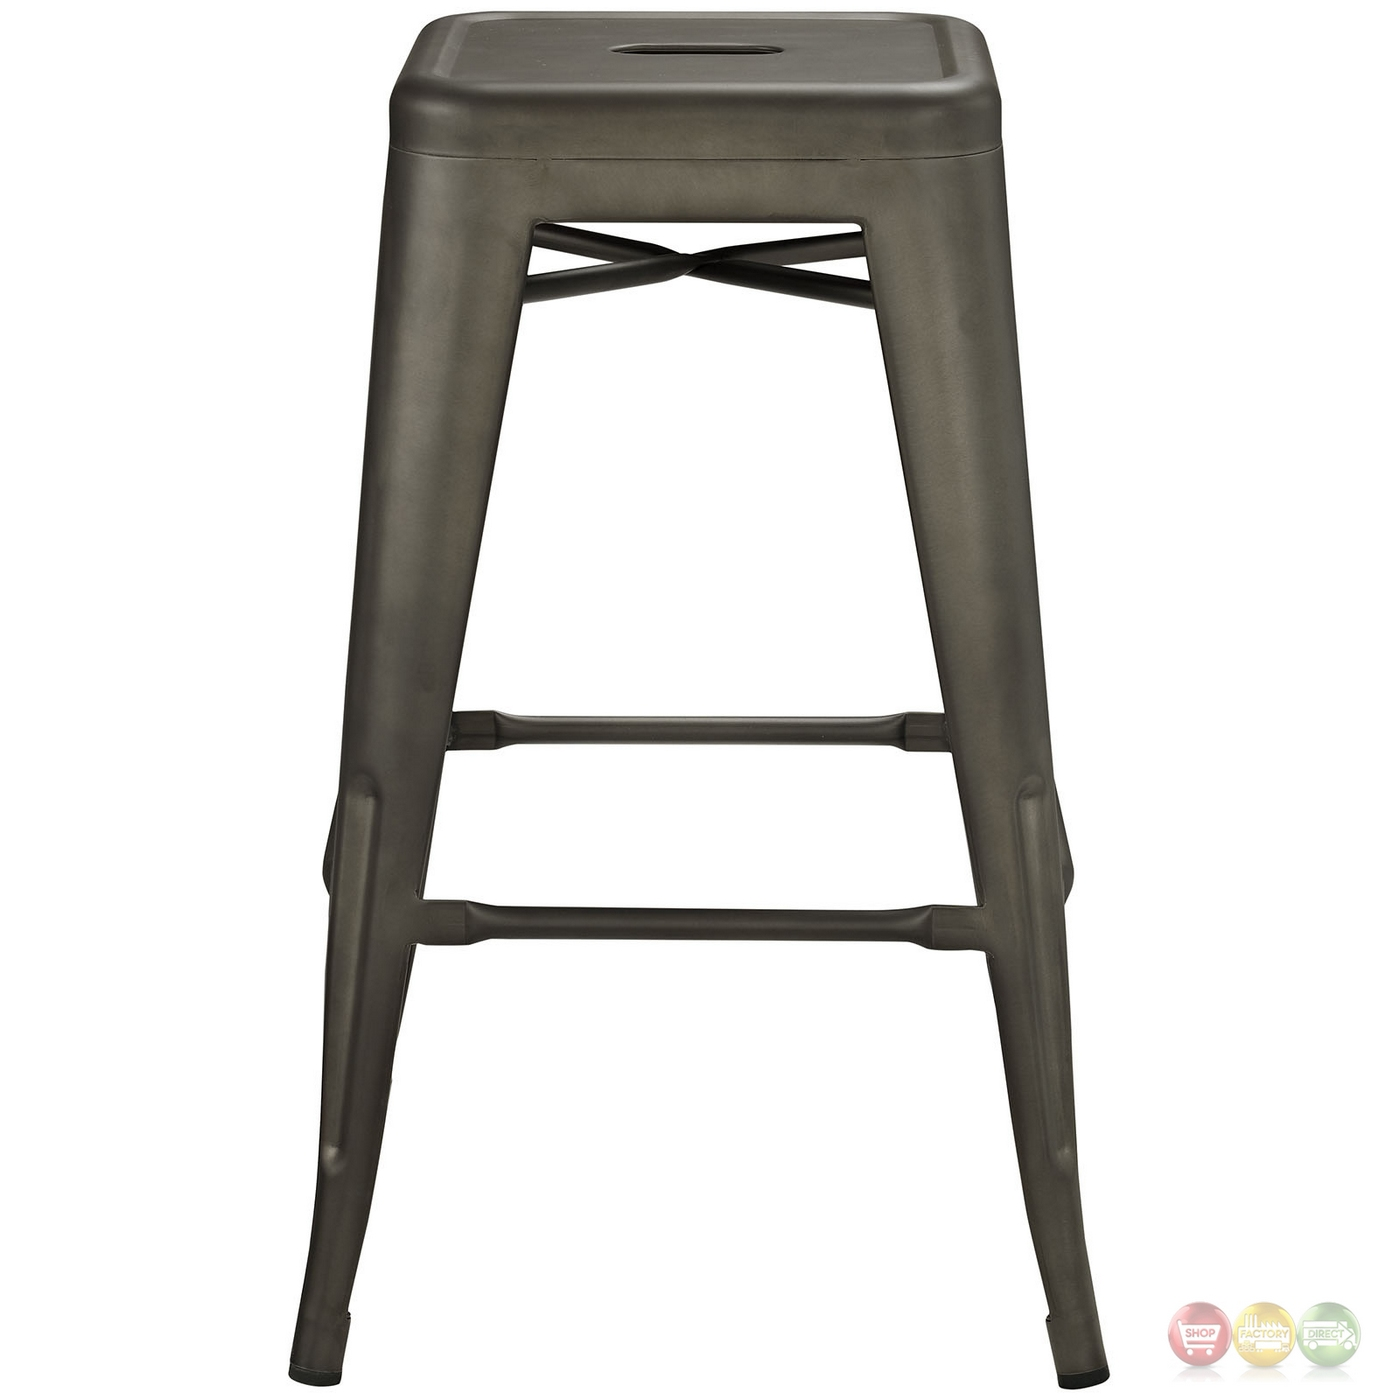 promenade vintage steel counter height stool w distressed finish